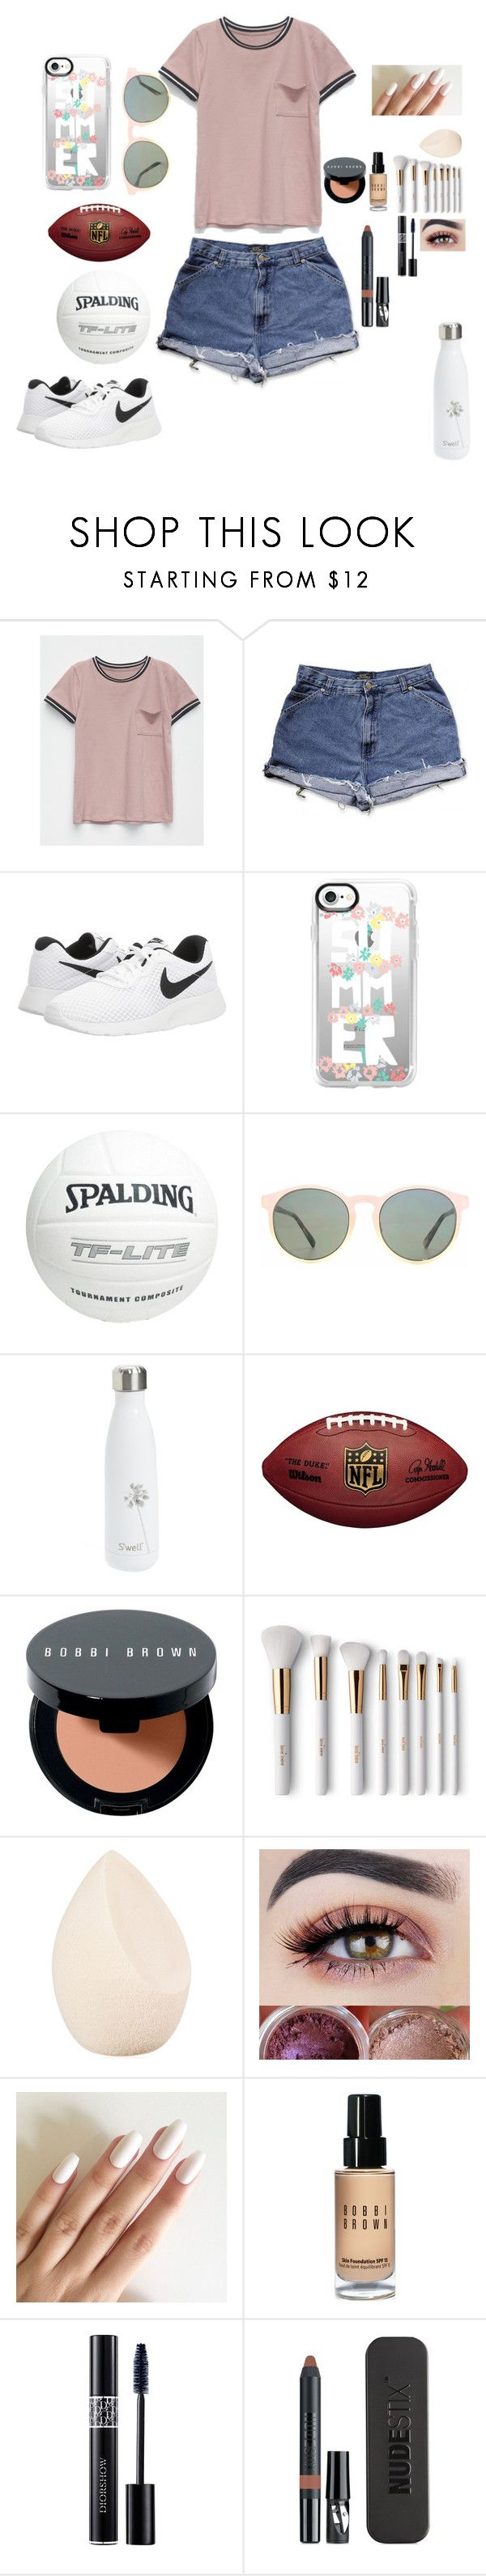 """""""Day 3:Sitting in the Park 🏞"""" by look-in-the-clouds ❤ liked on Polyvore featuring Full Tilt, NIKE, Casetify, Spalding, HOOK LDN, S'well, Bobbi Brown Cosmetics, Terre Mère, Christian Dior and Nudestix"""